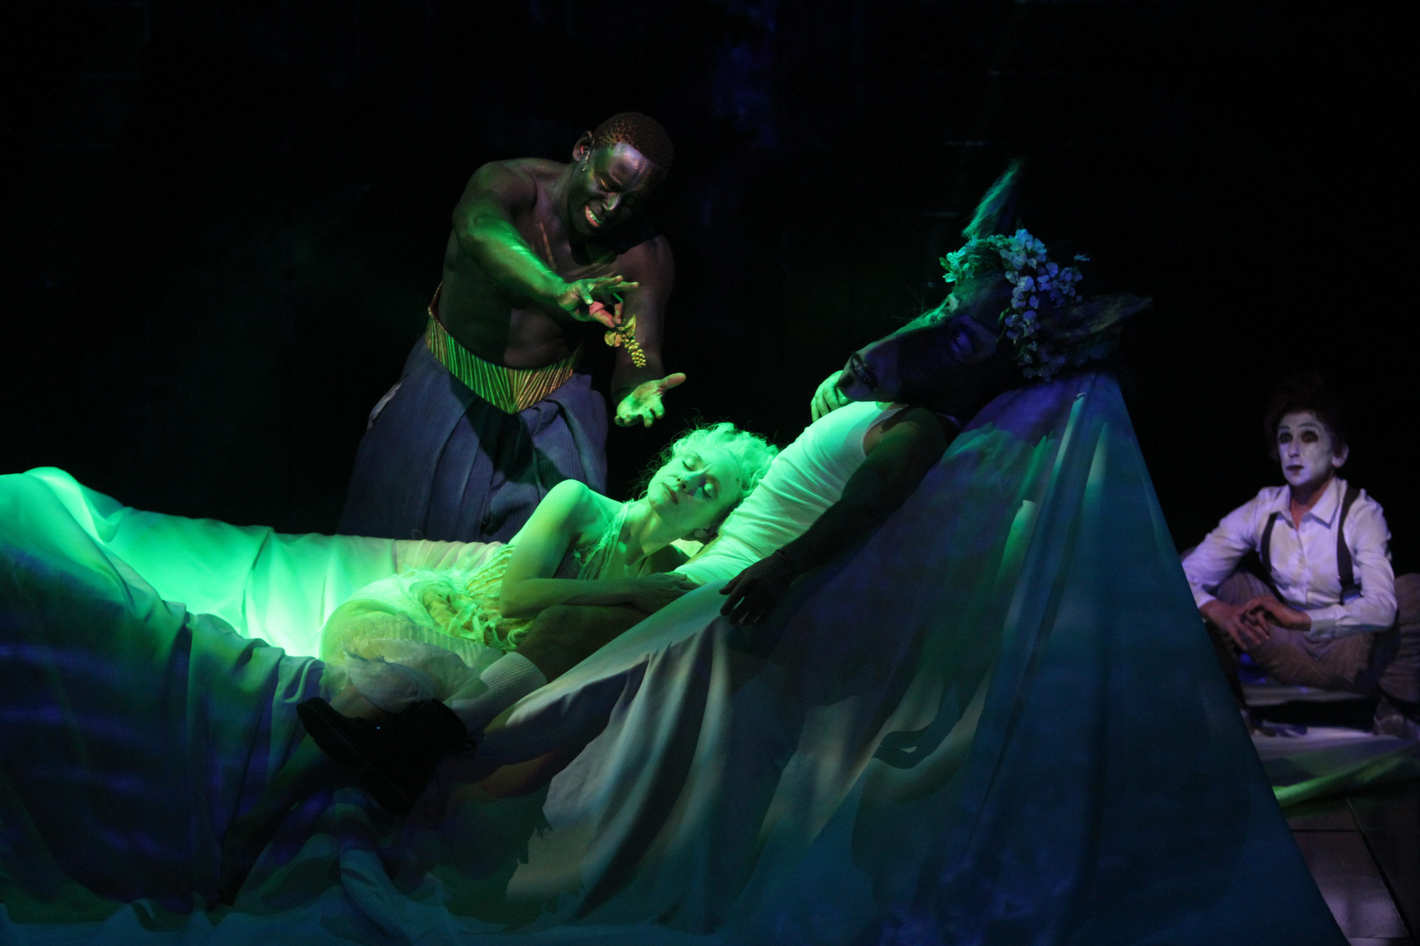 King Oberon (David Harewood) comes across his wife Titania (Tina Benko) curled in the arms of the actor Bottom (Max Casella) who was been transformed into a donkey, while the knave Puck (Kathryn Hunter) looks on in A Midsummer Night's Dream (2014)